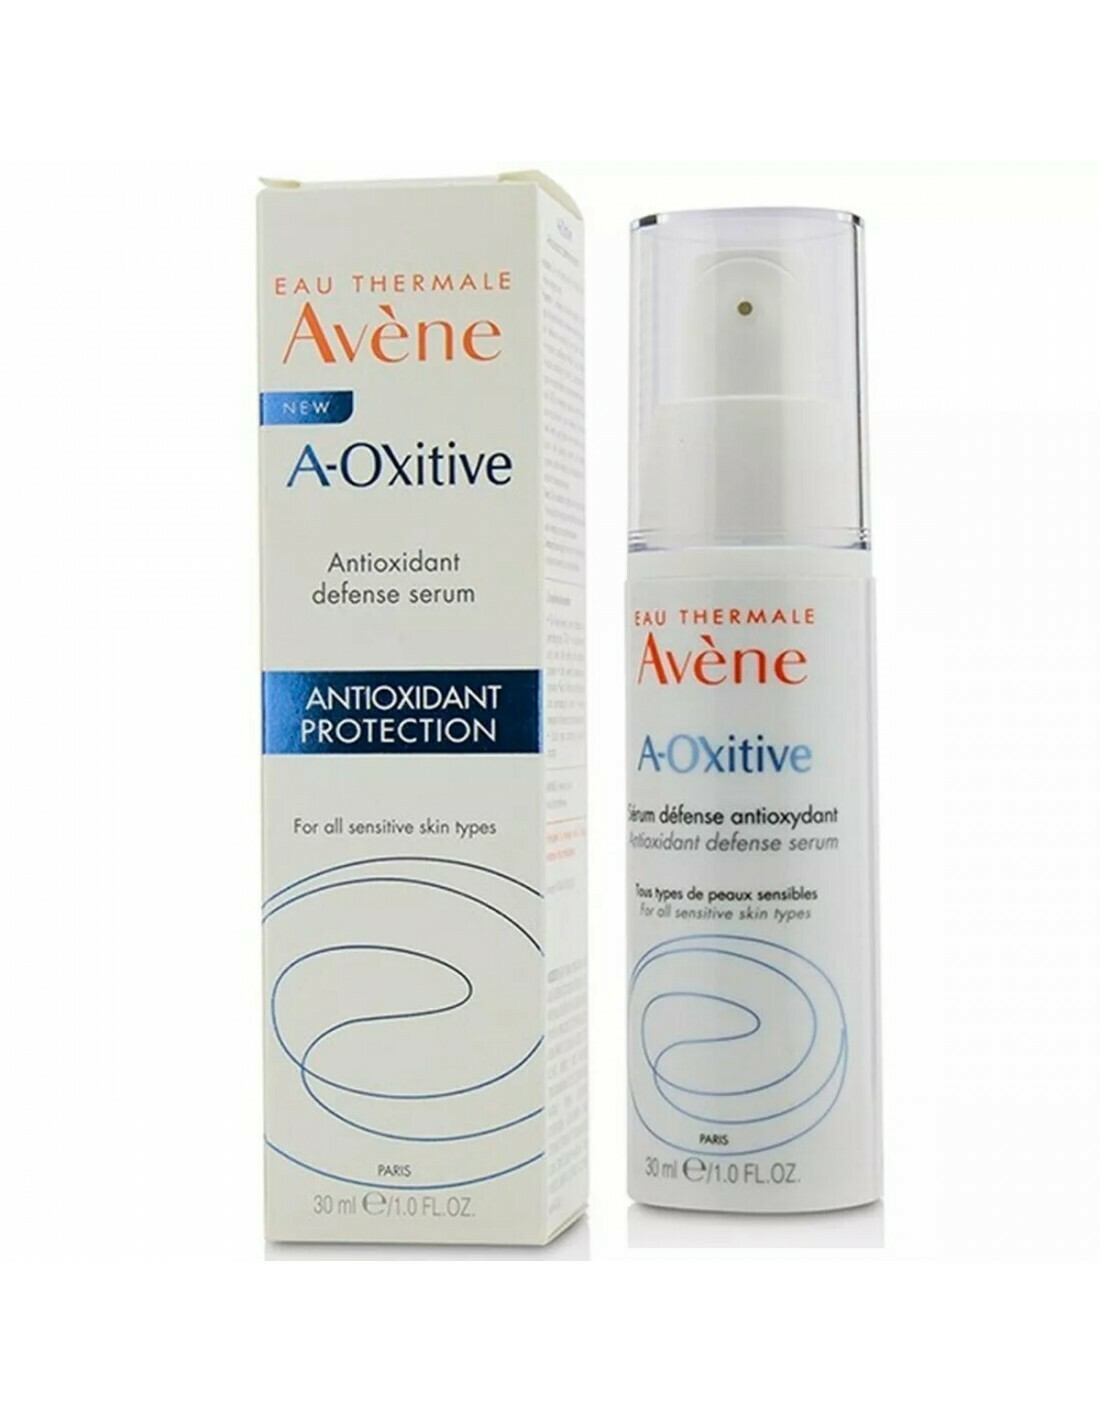 AVENE A-OXITIVE SERUM DE DEFENSA ANTIOXIDANTE 30 ML